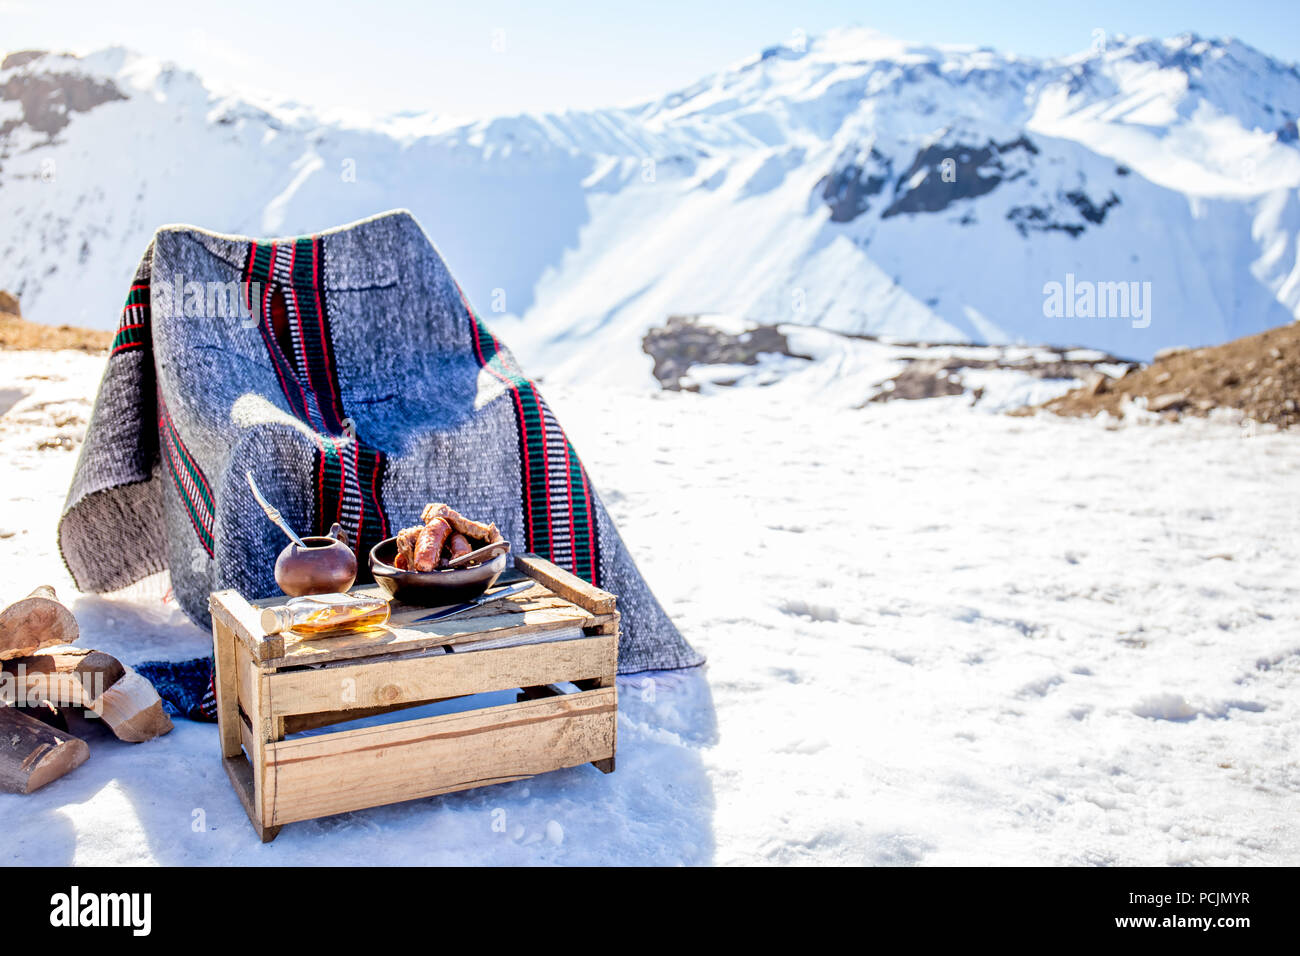 Winter picnic in chilean argentine snow mountaines Andes with hot meat food and drink yerba mate. - Stock Image